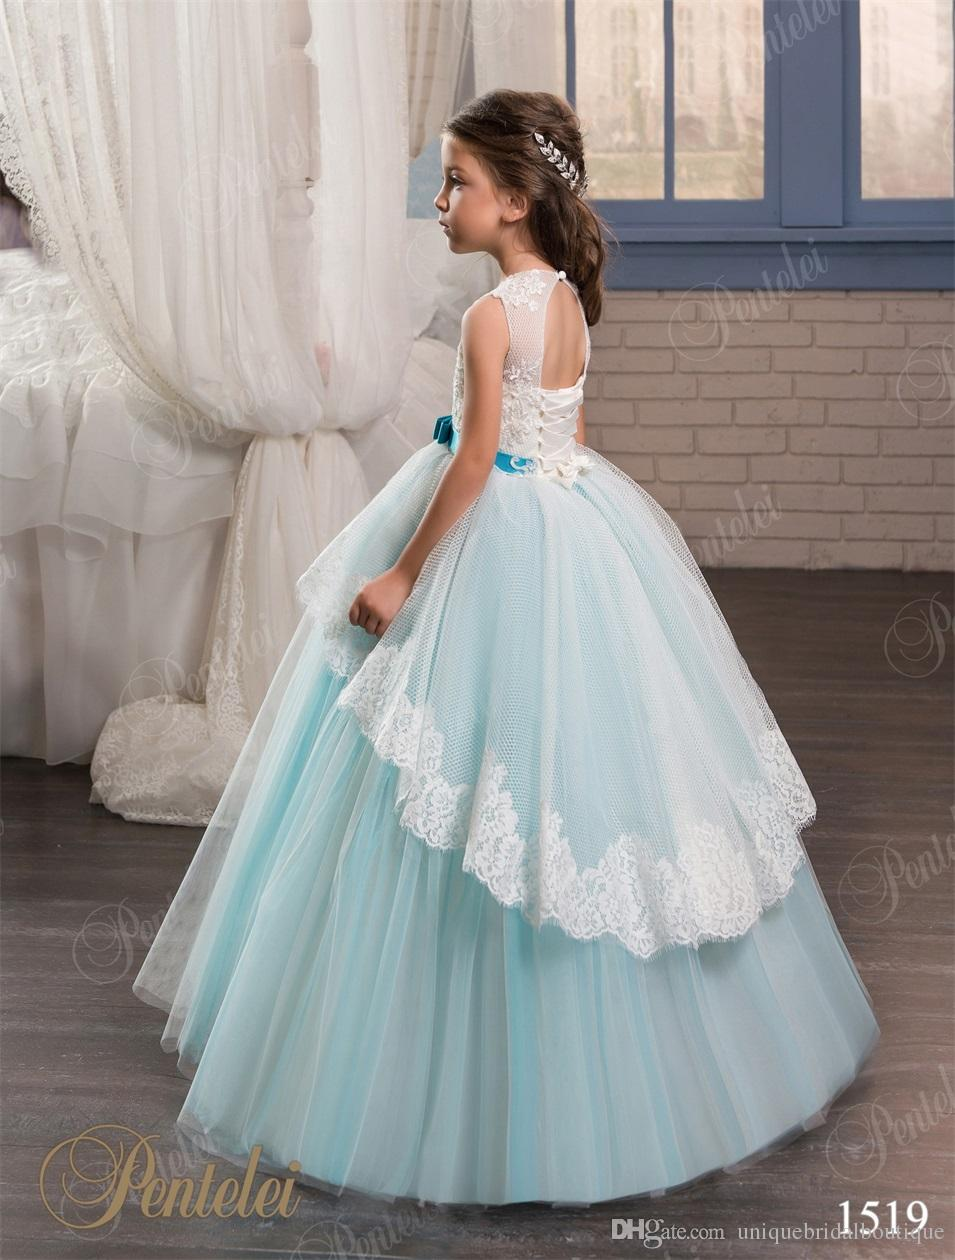 Girls Wedding Dresses 2017 Pentelei with Lace Up Back and Bow Sash Appliques Tulle Sky Blue Flower Girls Gowns for Weddings